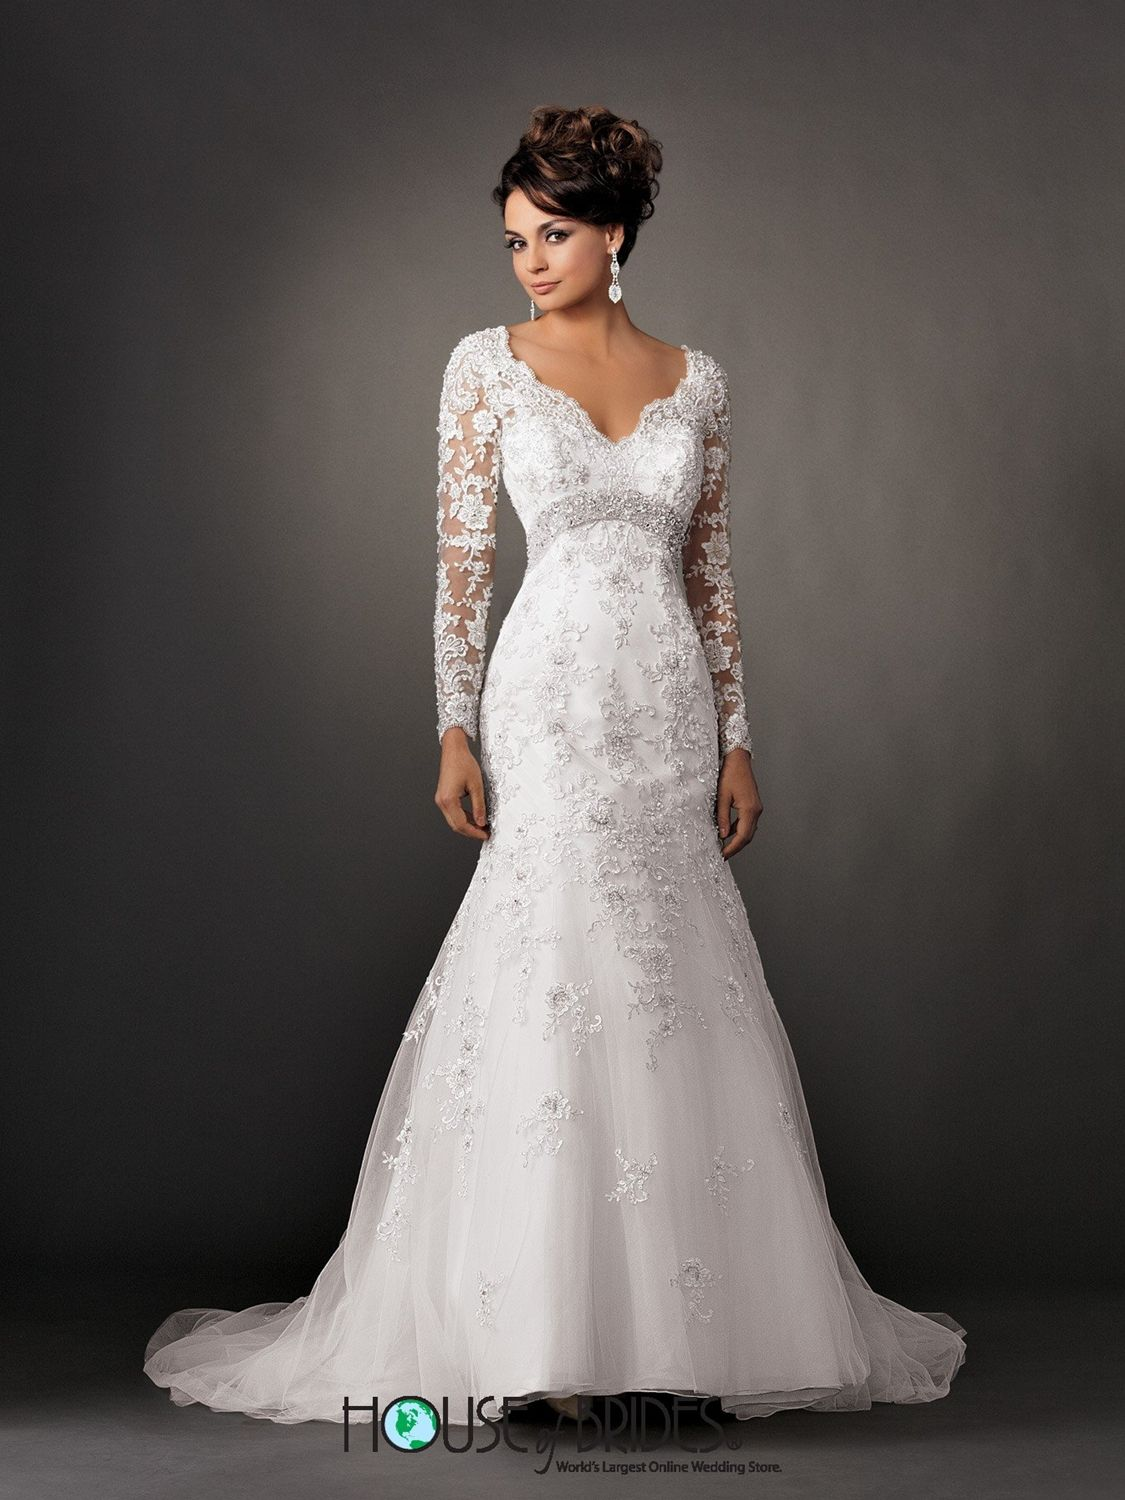 Reflections by jordan wedding dress style m house of brides